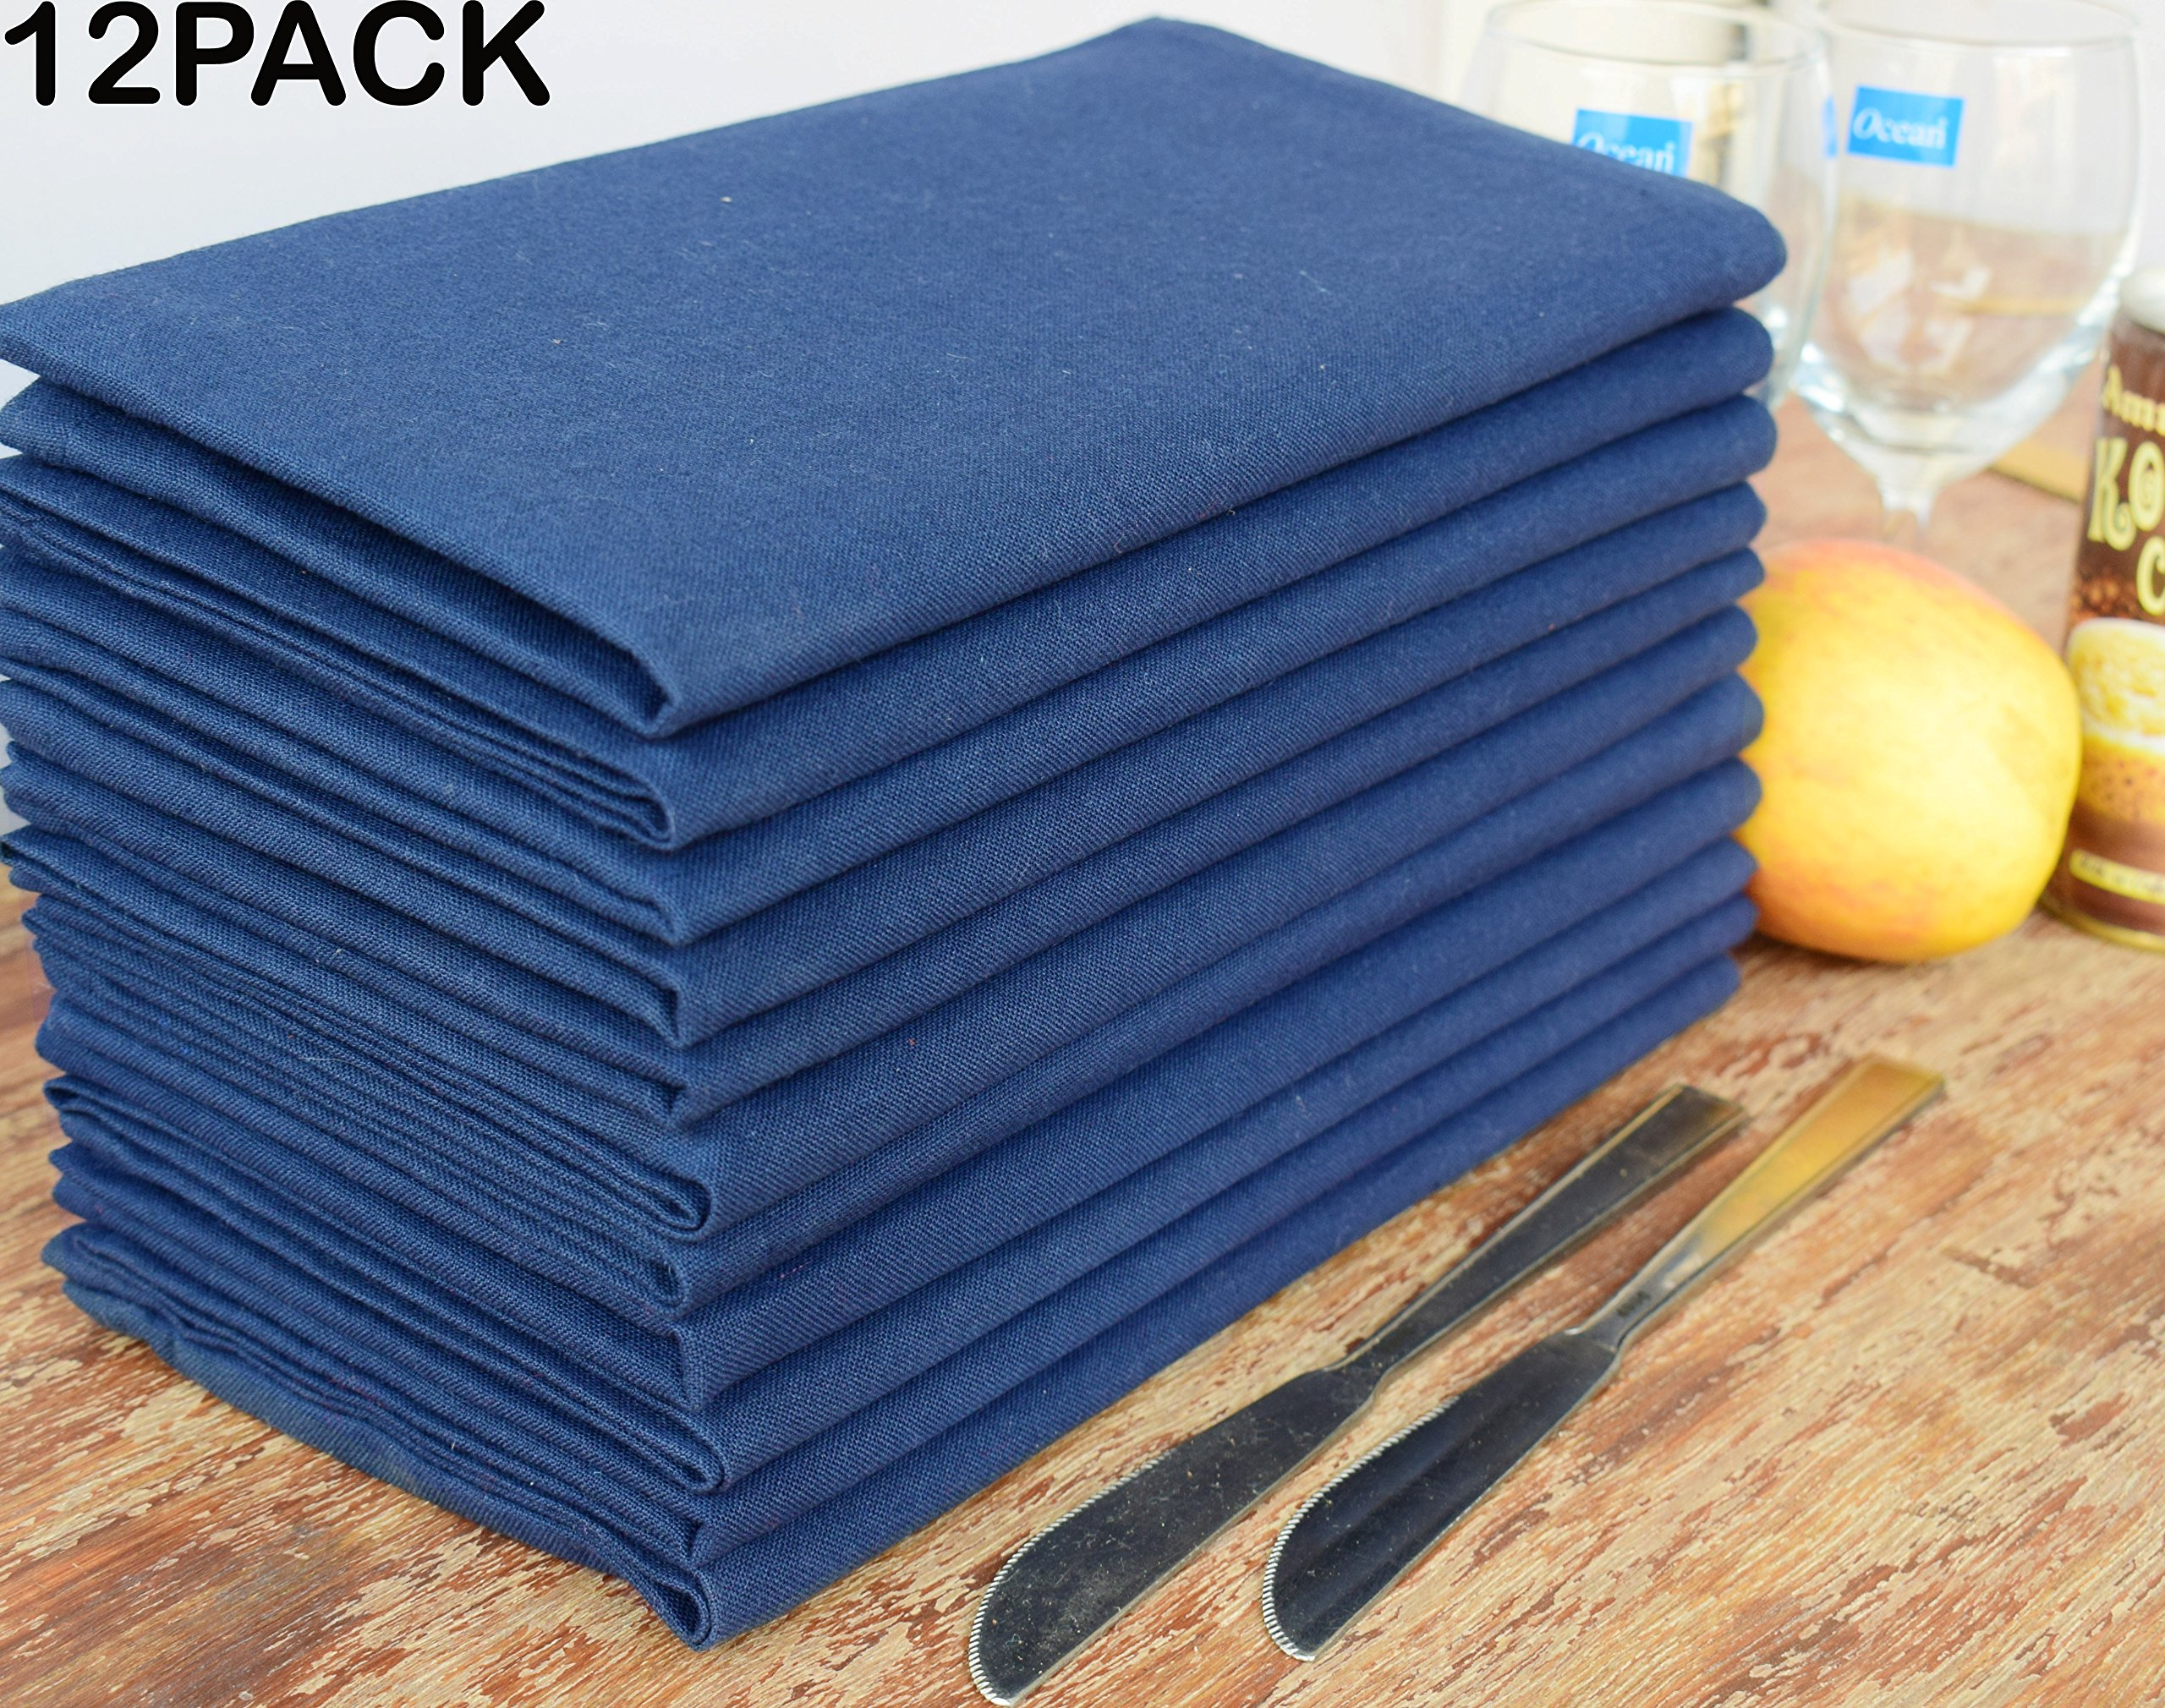 Linen Clubs Pack of 12 Pieces,100% Cellulose Cotton fibres,20'' Square, Oversize Solid Colored Dinner Napkin with Decorative selvage fold. By (Night Sky-Navy)